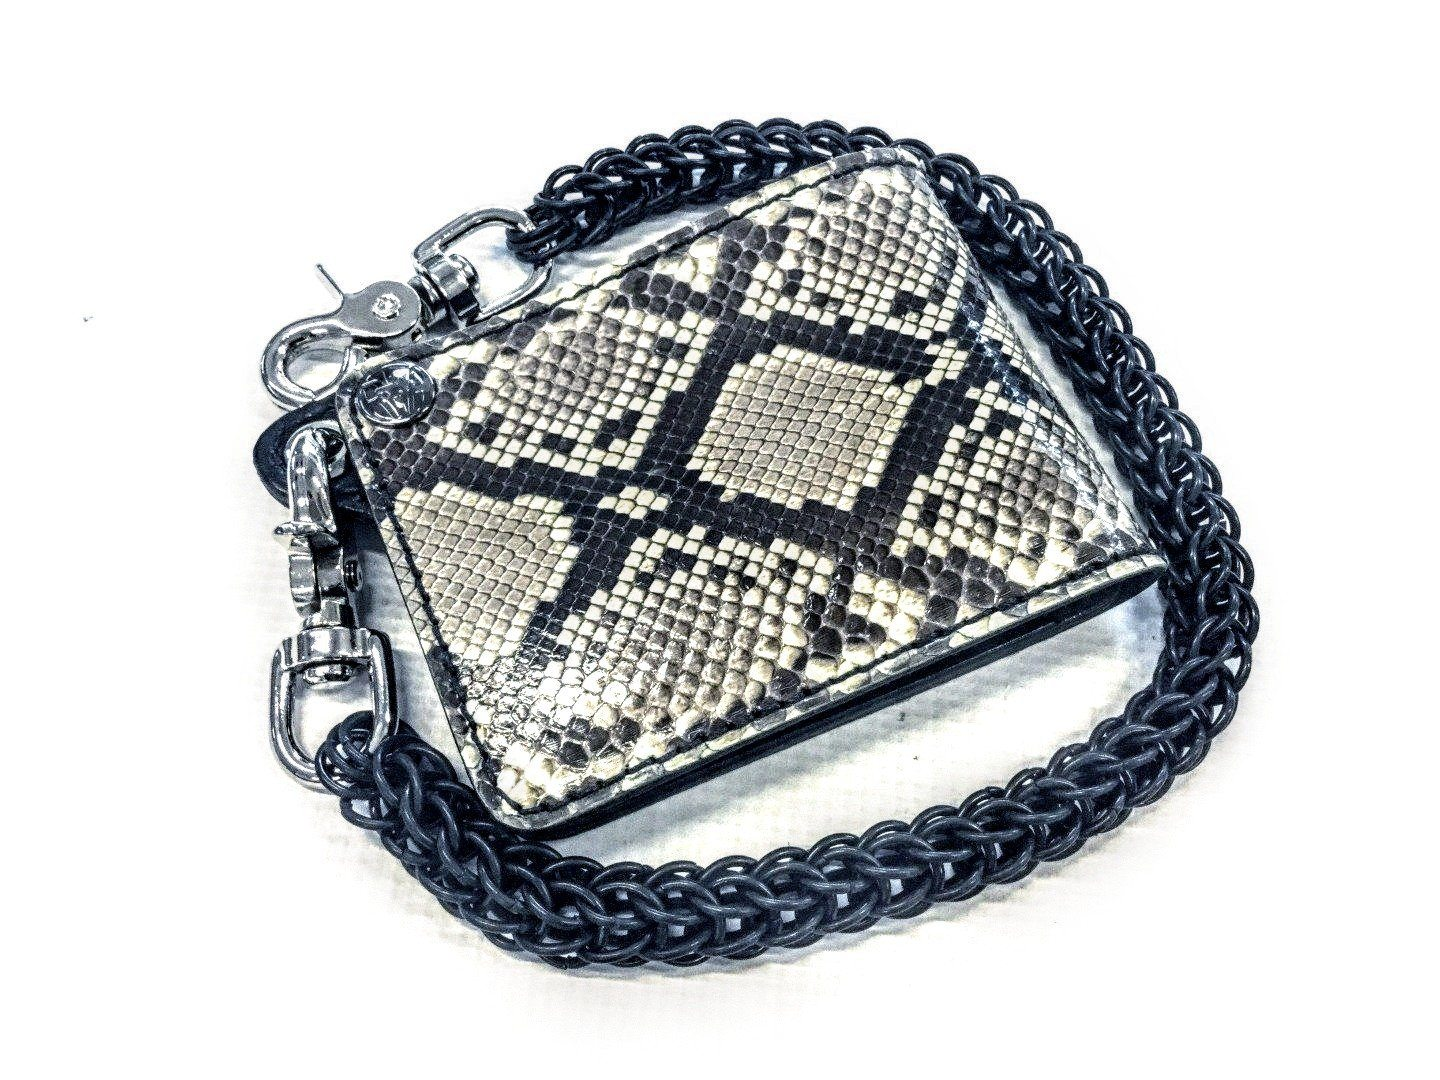 Bifold Leather Chain Wallet - White Python - Anvil Customs